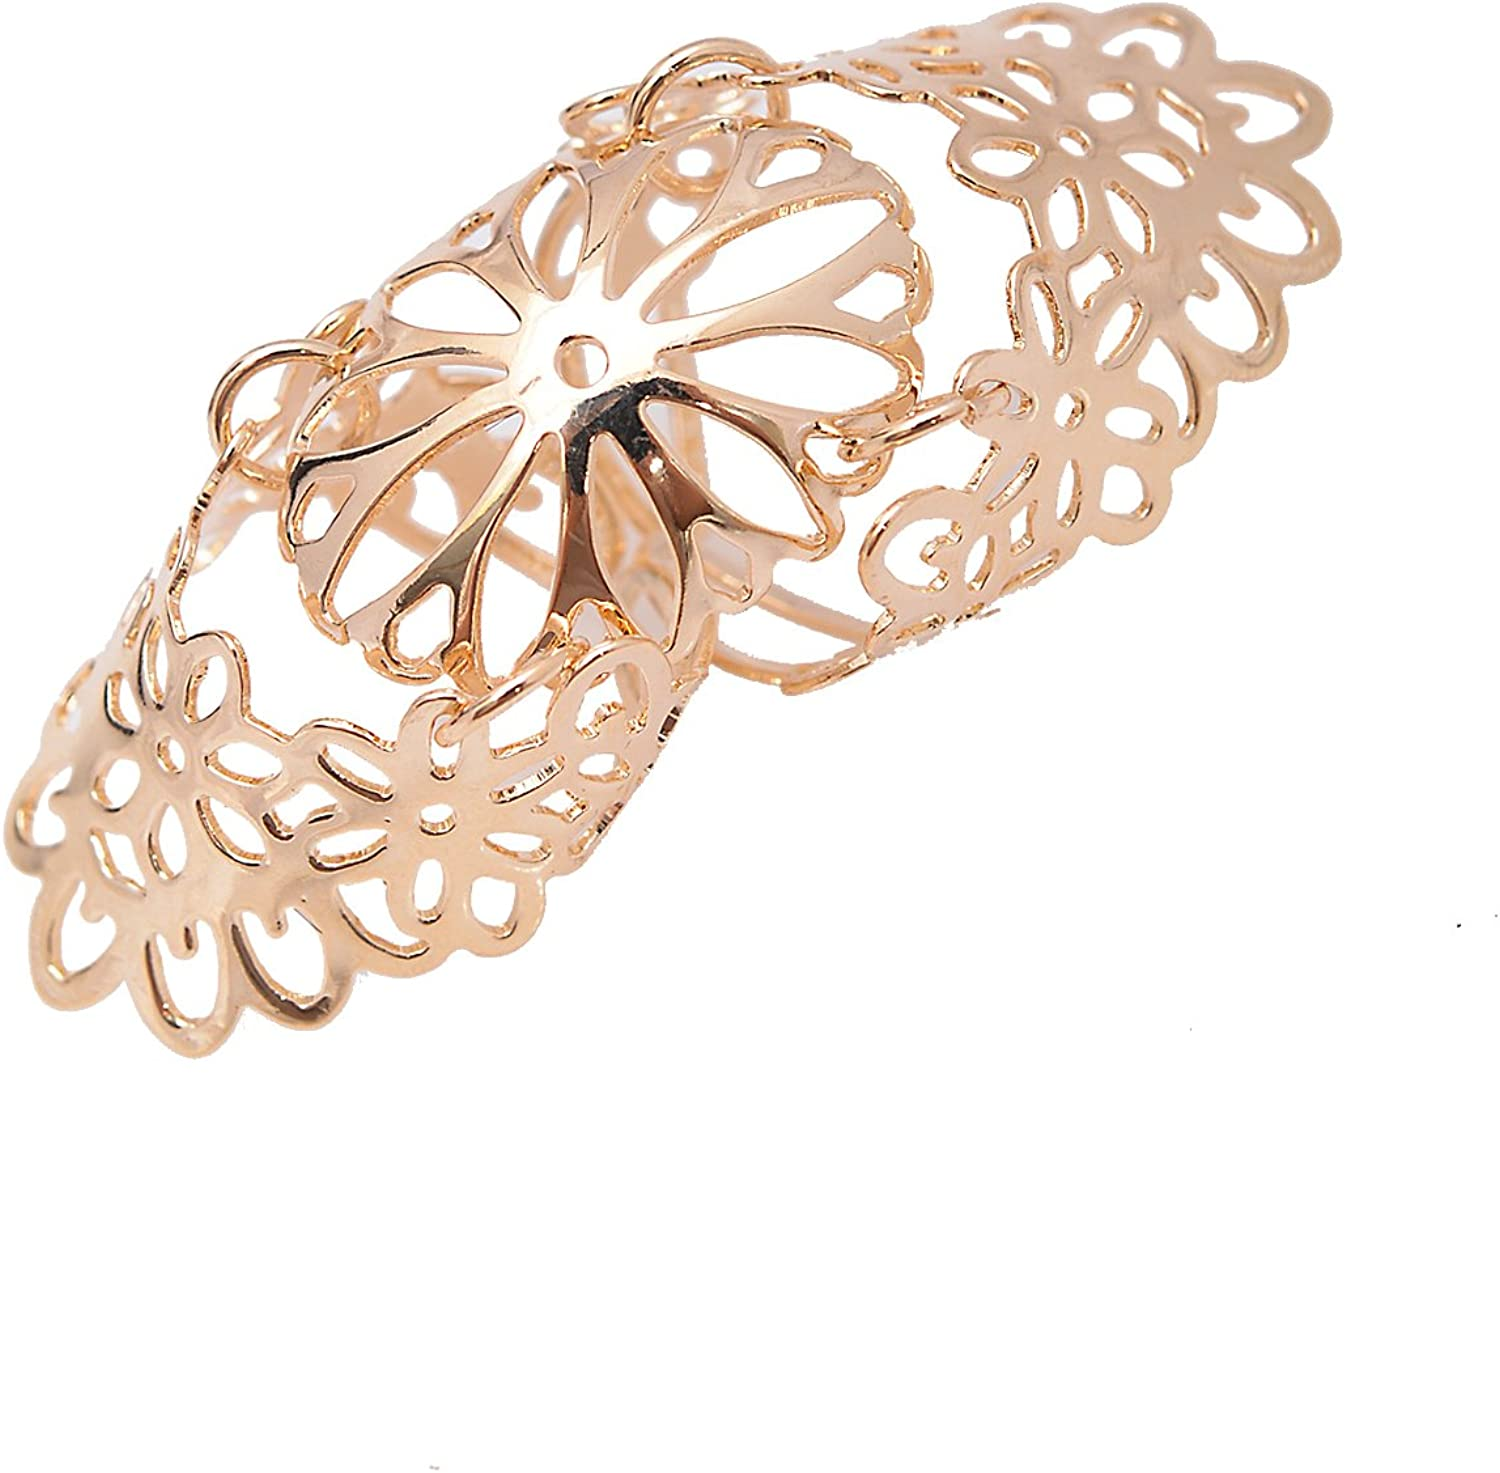 chelseachicNYC Adjustable Floral 3 Piece Knuckle Statement Ring